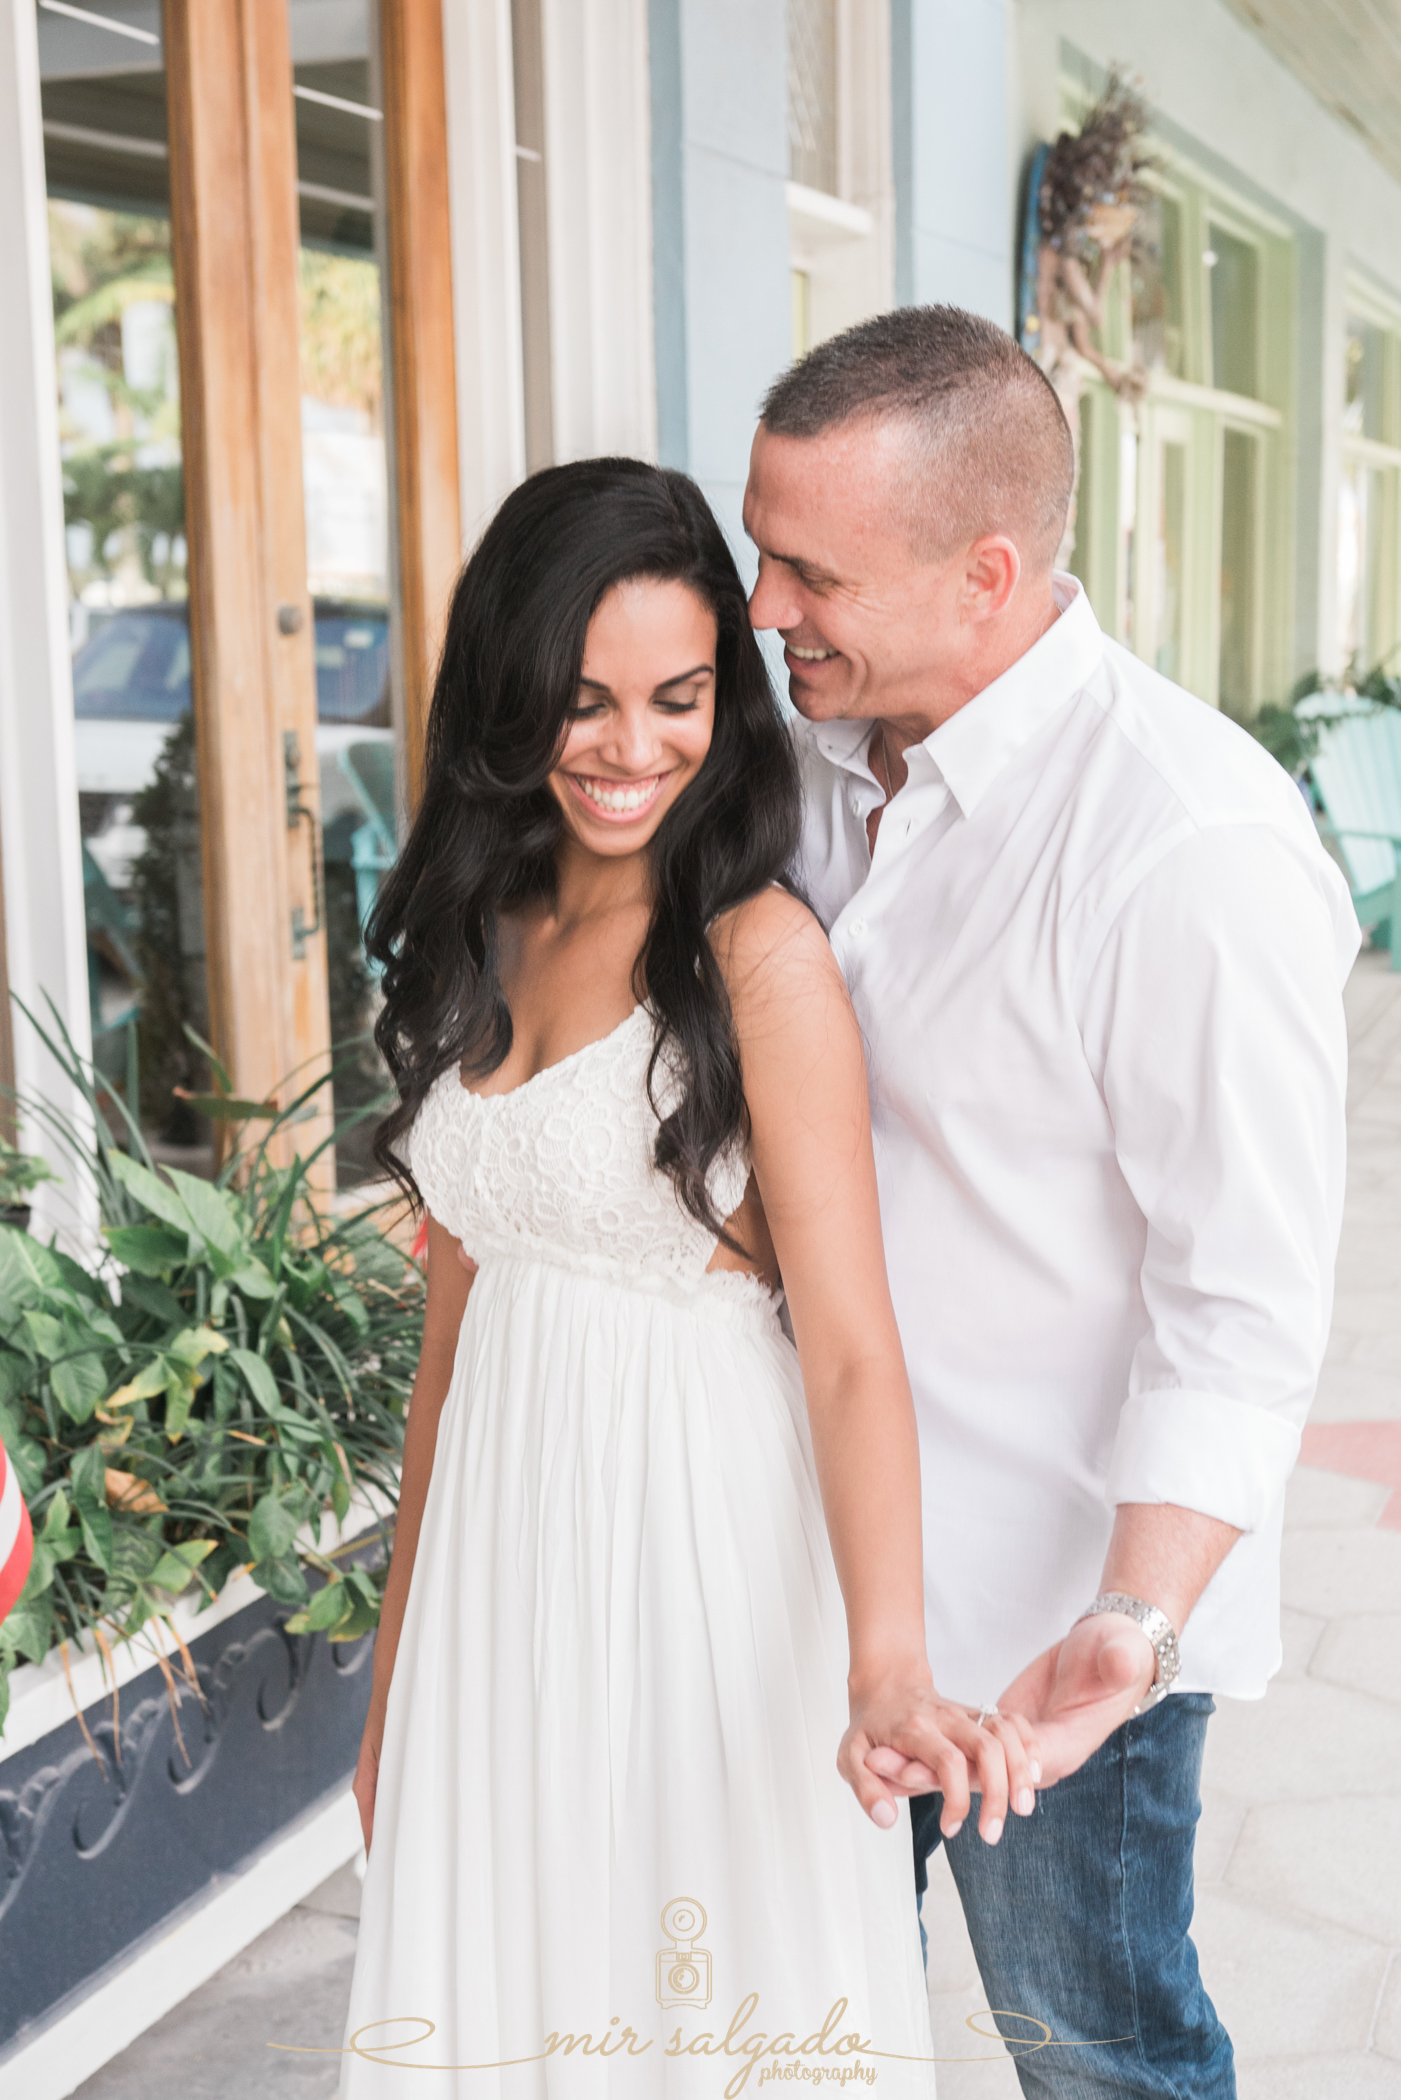 candid-photographer, off-guard-engagement-session, tampa-wedding-photographer